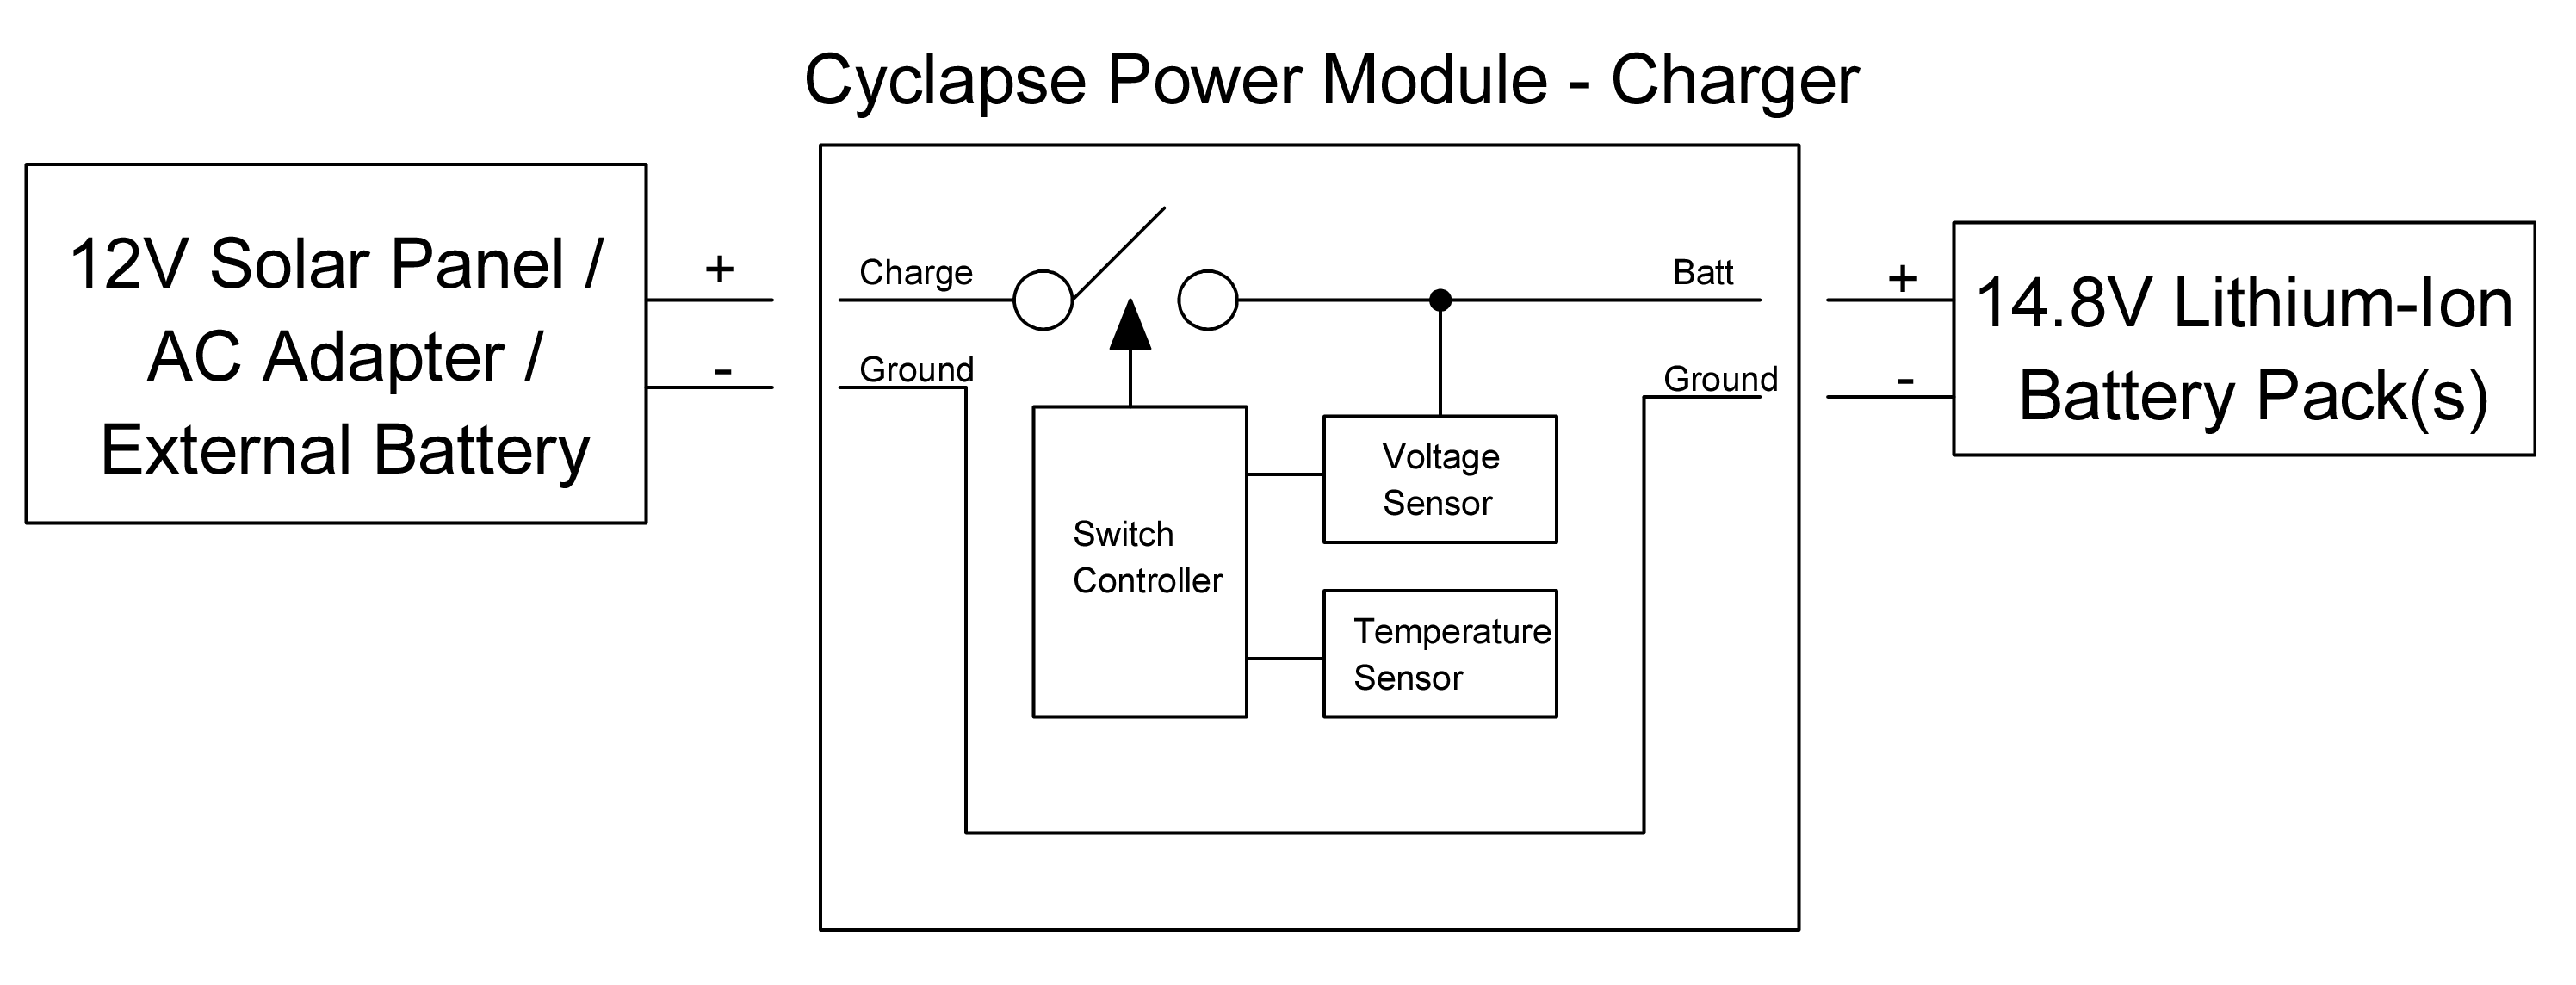 Cyclapse Power Module Battery Charger Circuit Diagram On Charging 12v Dc Solar Wiring